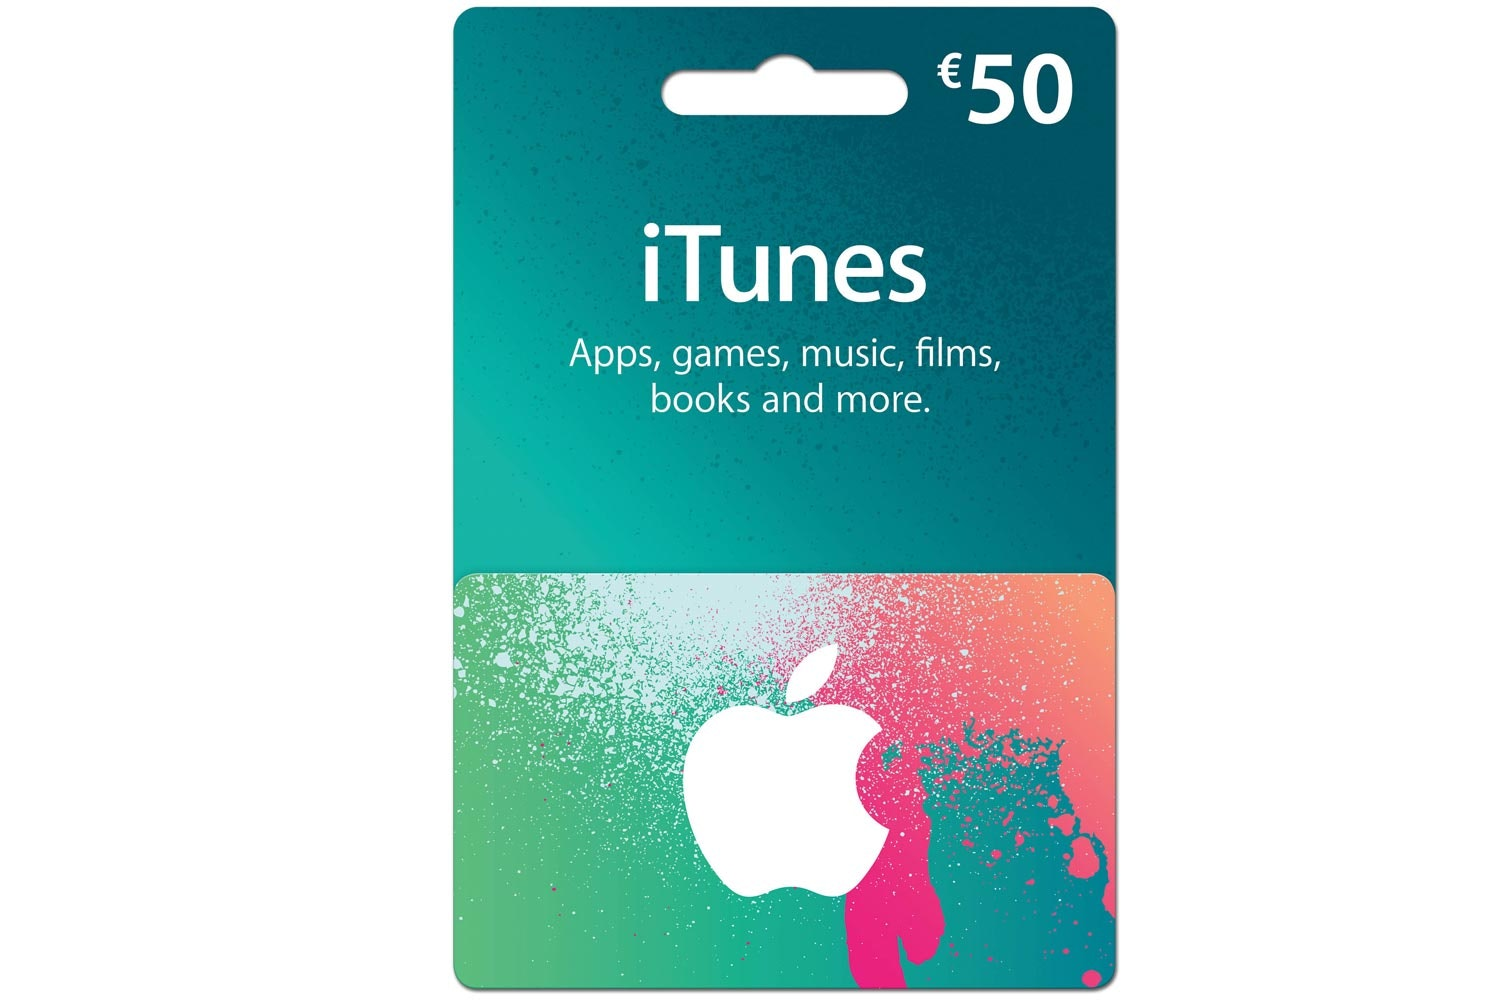 €50 iTunes Gift Card